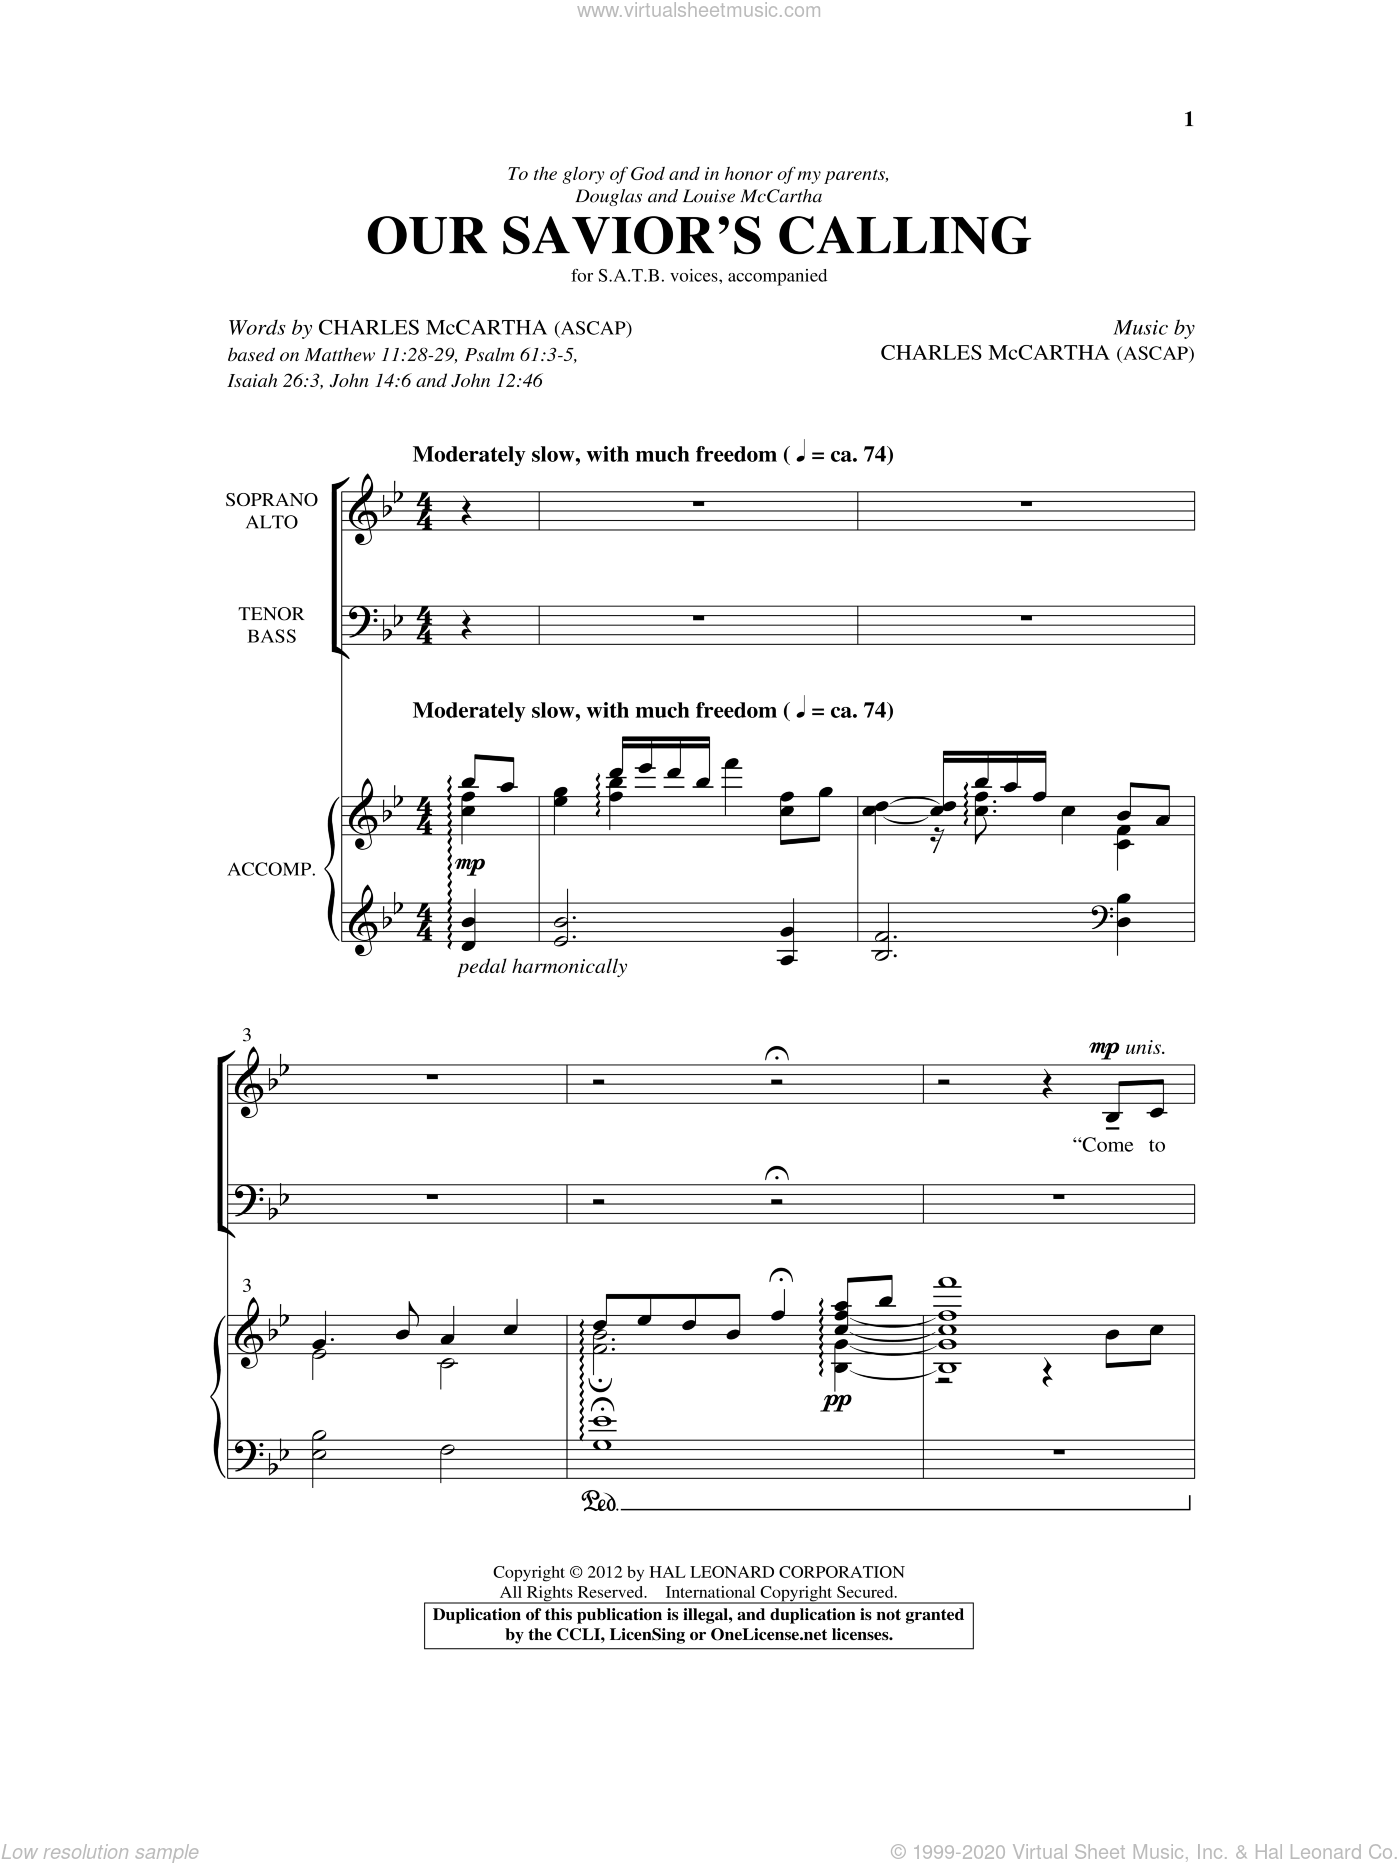 Our Savior's Calling sheet music for choir and piano (SATB) by Charles McCartha